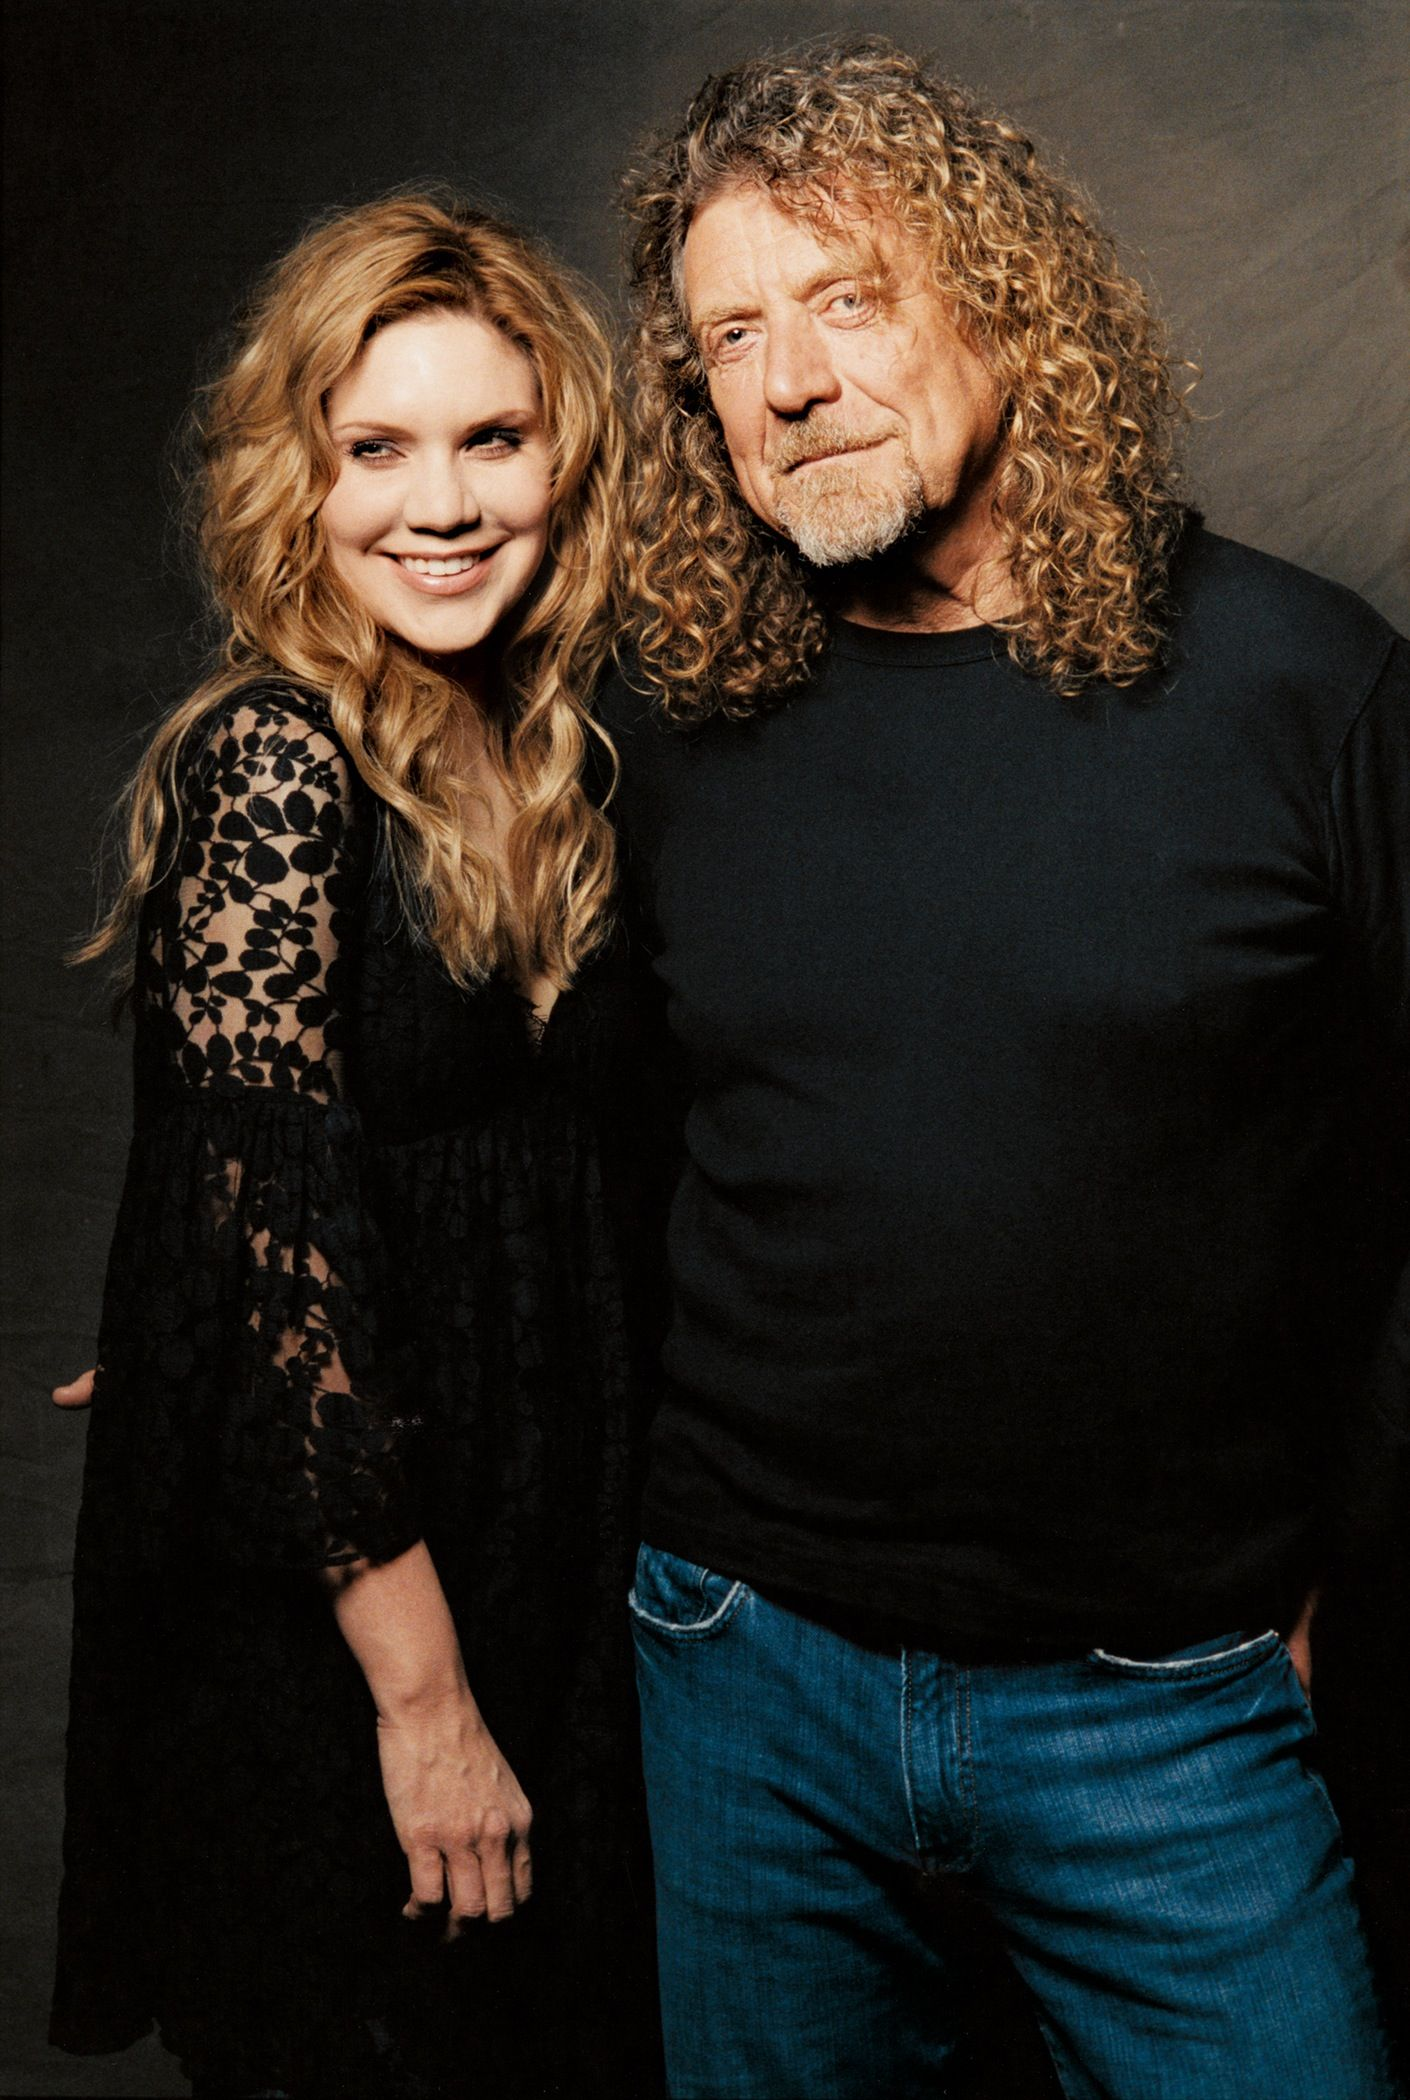 alison krauss with her sweet, sweet voice. | music/musicians